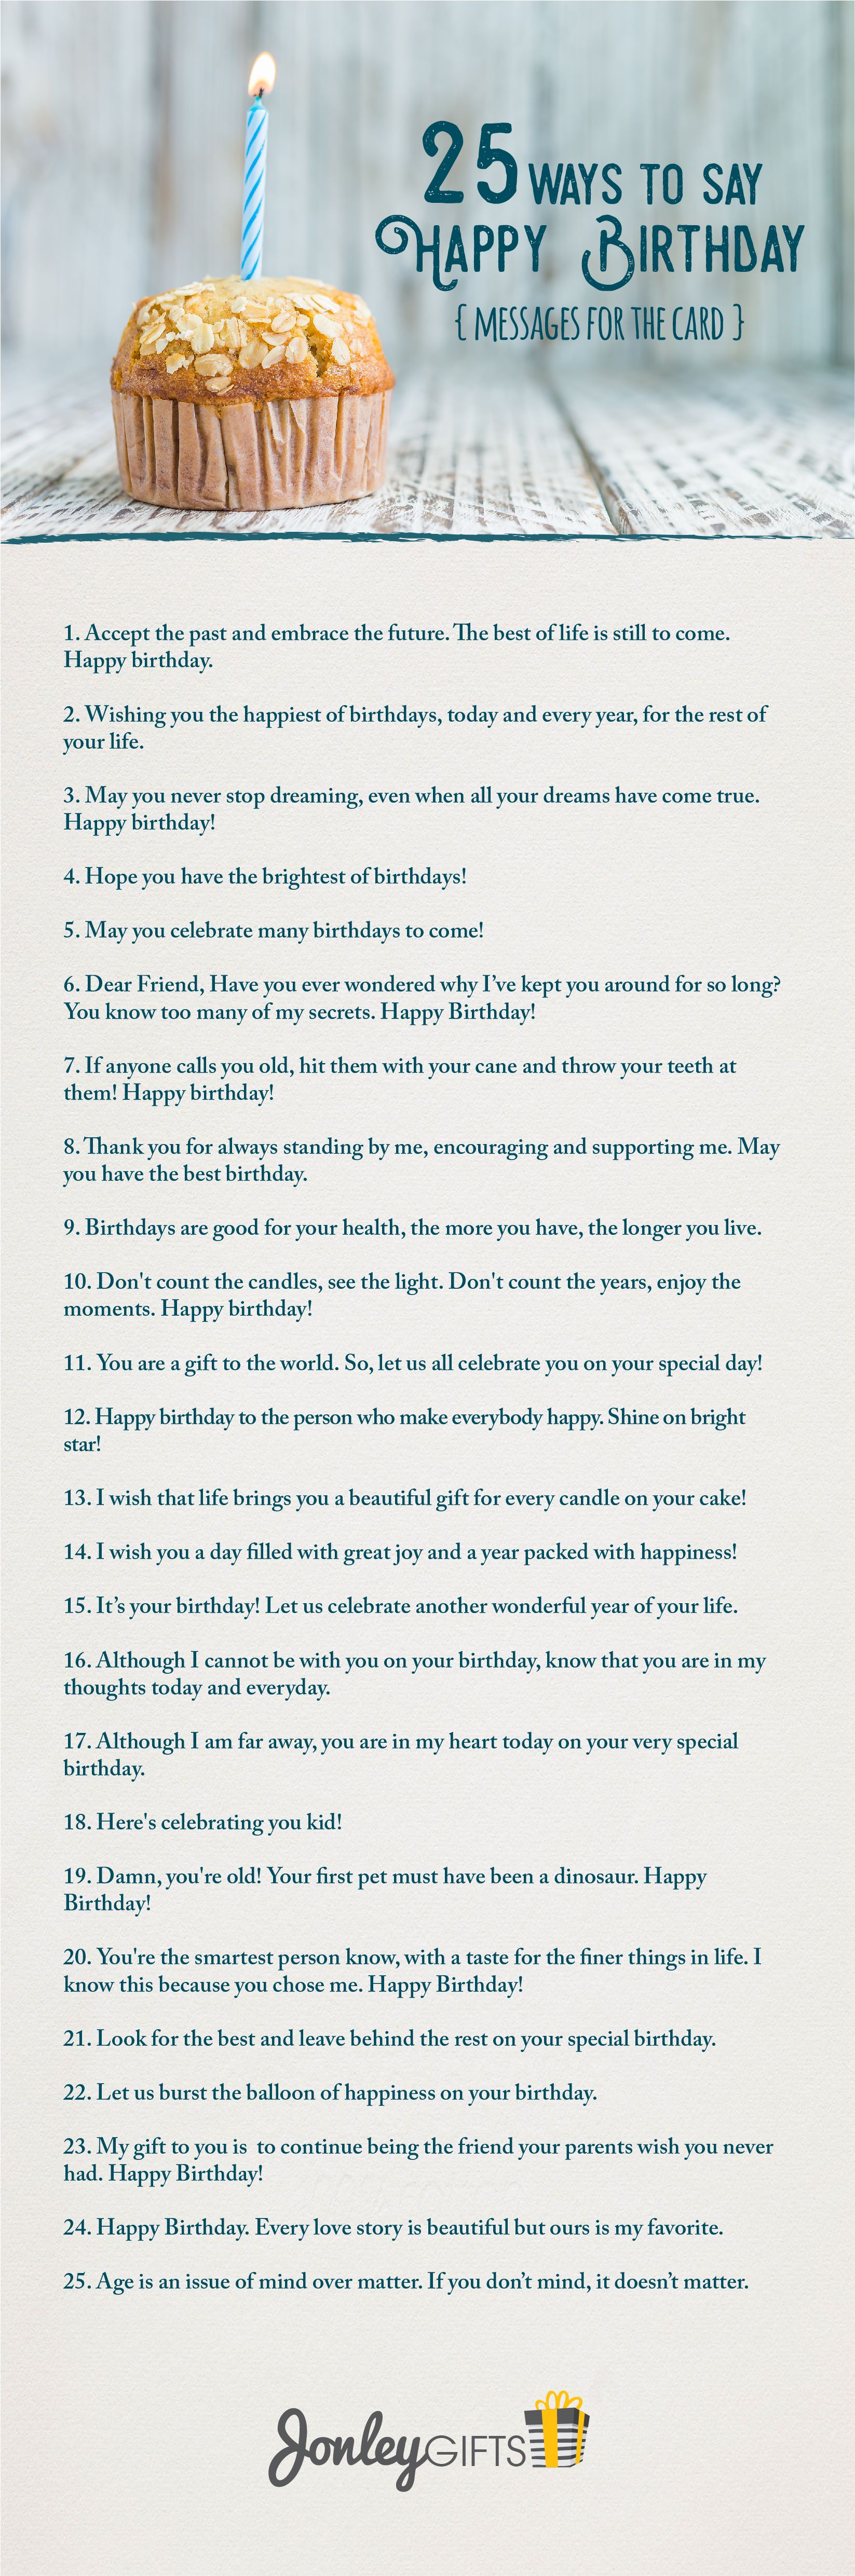 25 Ways To Say Happy Birthday Birthday Messages For The Card